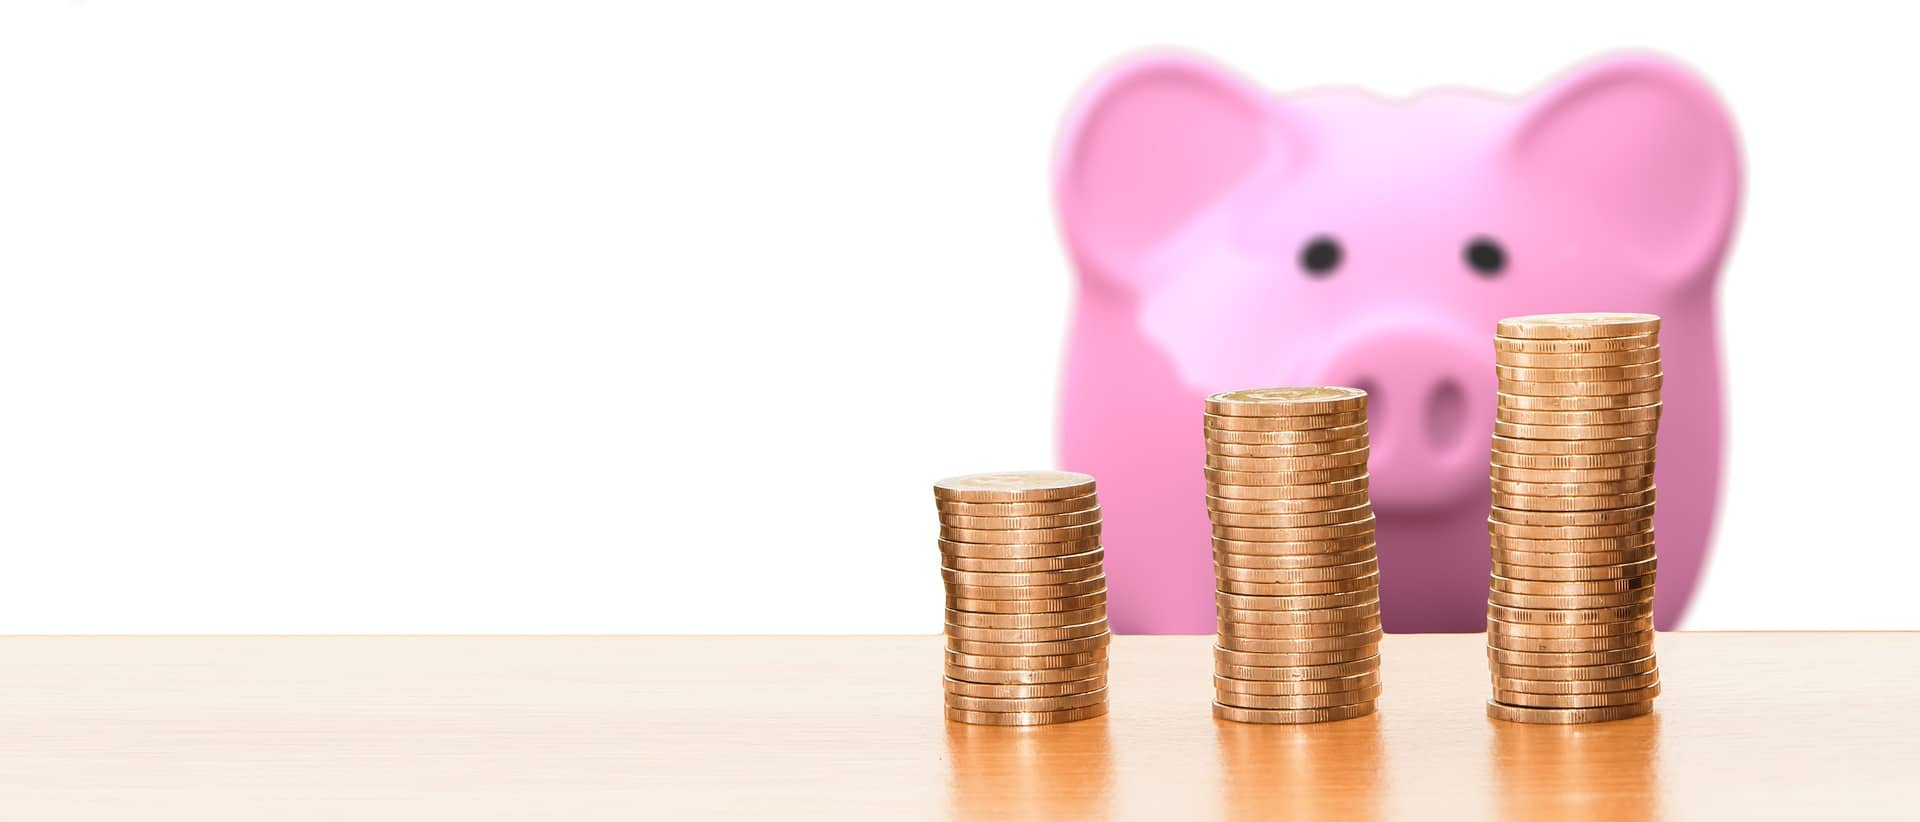 piggybank https://pixabay.com/photos/save-piggy-bank-money-coins-3402476/